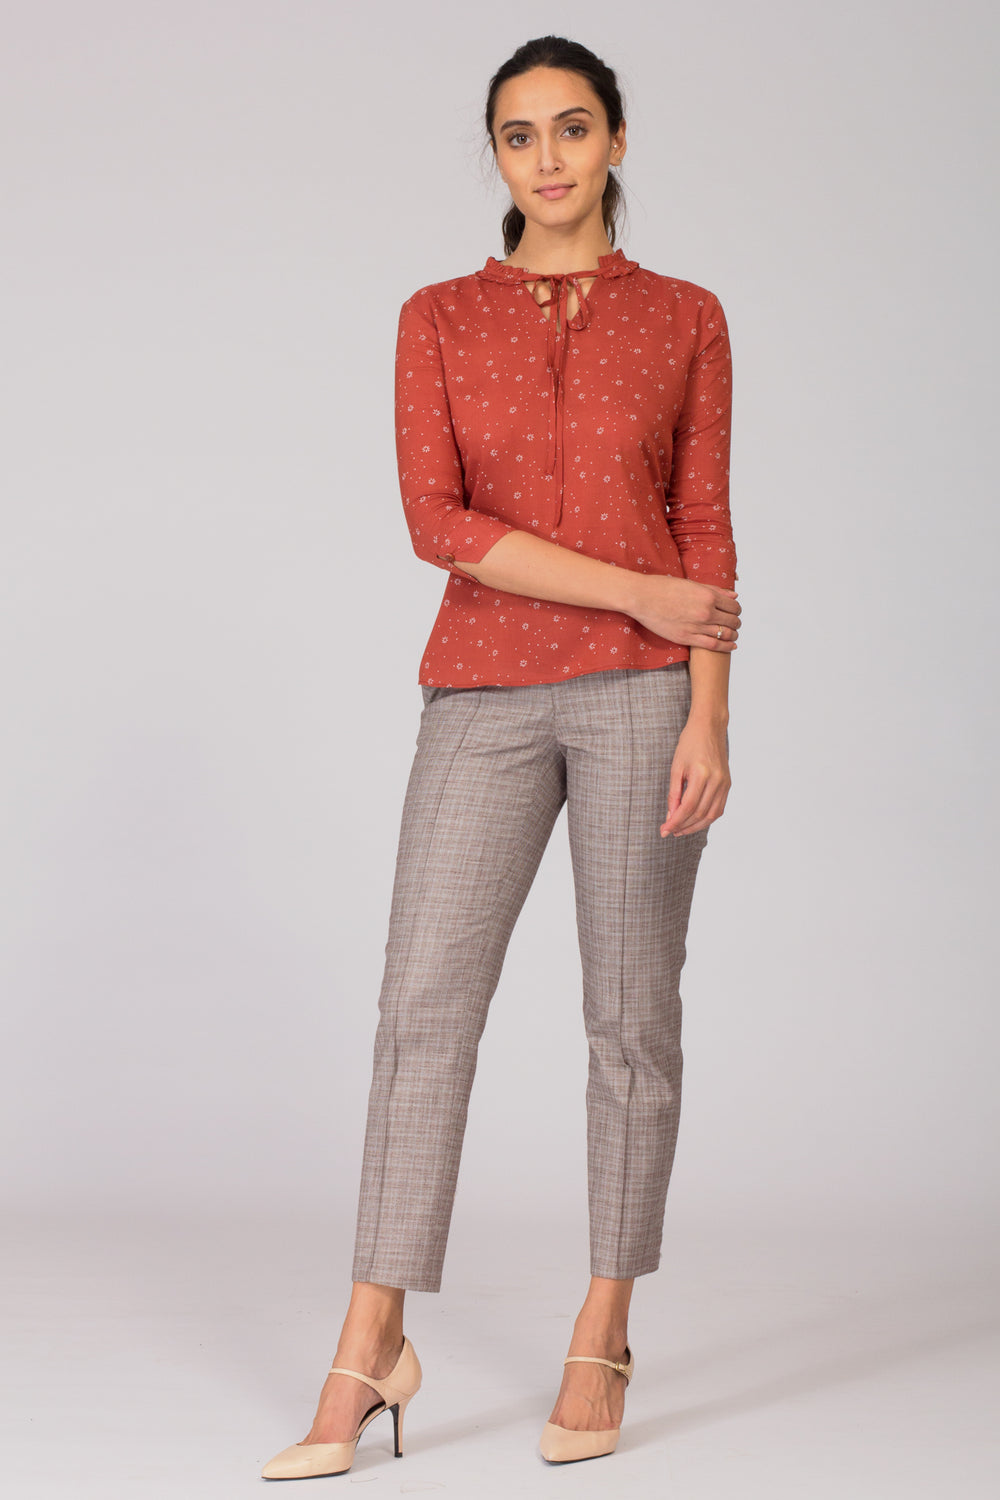 Smart Cotton women's formal pants and trousers for office. Shop online for culottes , trousers, and formal palazzo pants at www.intermod.in